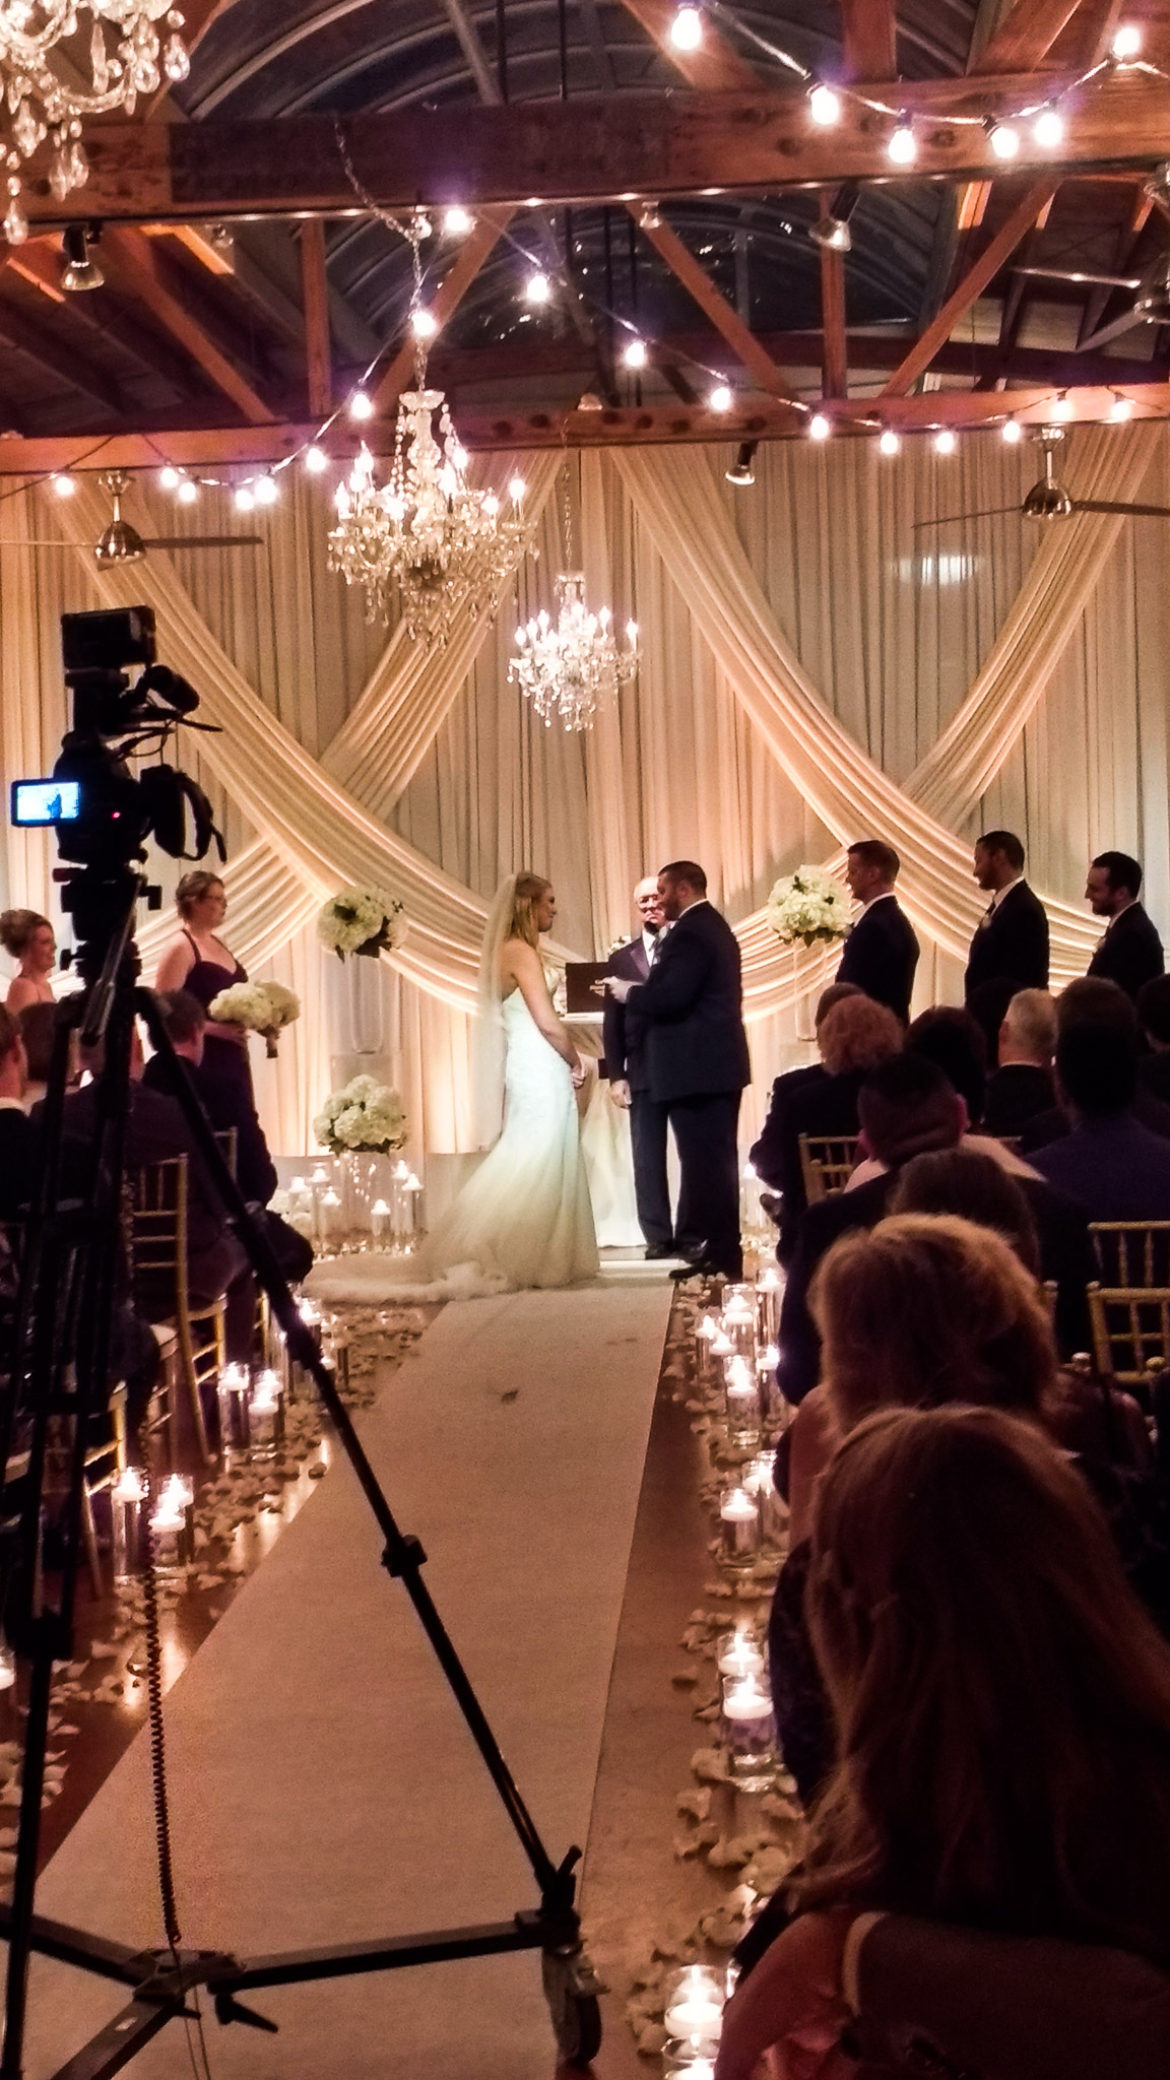 Elegant_Event_Lighting_Chicago_Loft_On_Lake_Wedding_Uplighting_Ivory_Backdrop_Draping_Cafe_Globe_Lights_Crystal_Chandeliers_Flower_Ceremony_Aisle_Runner_Romantic